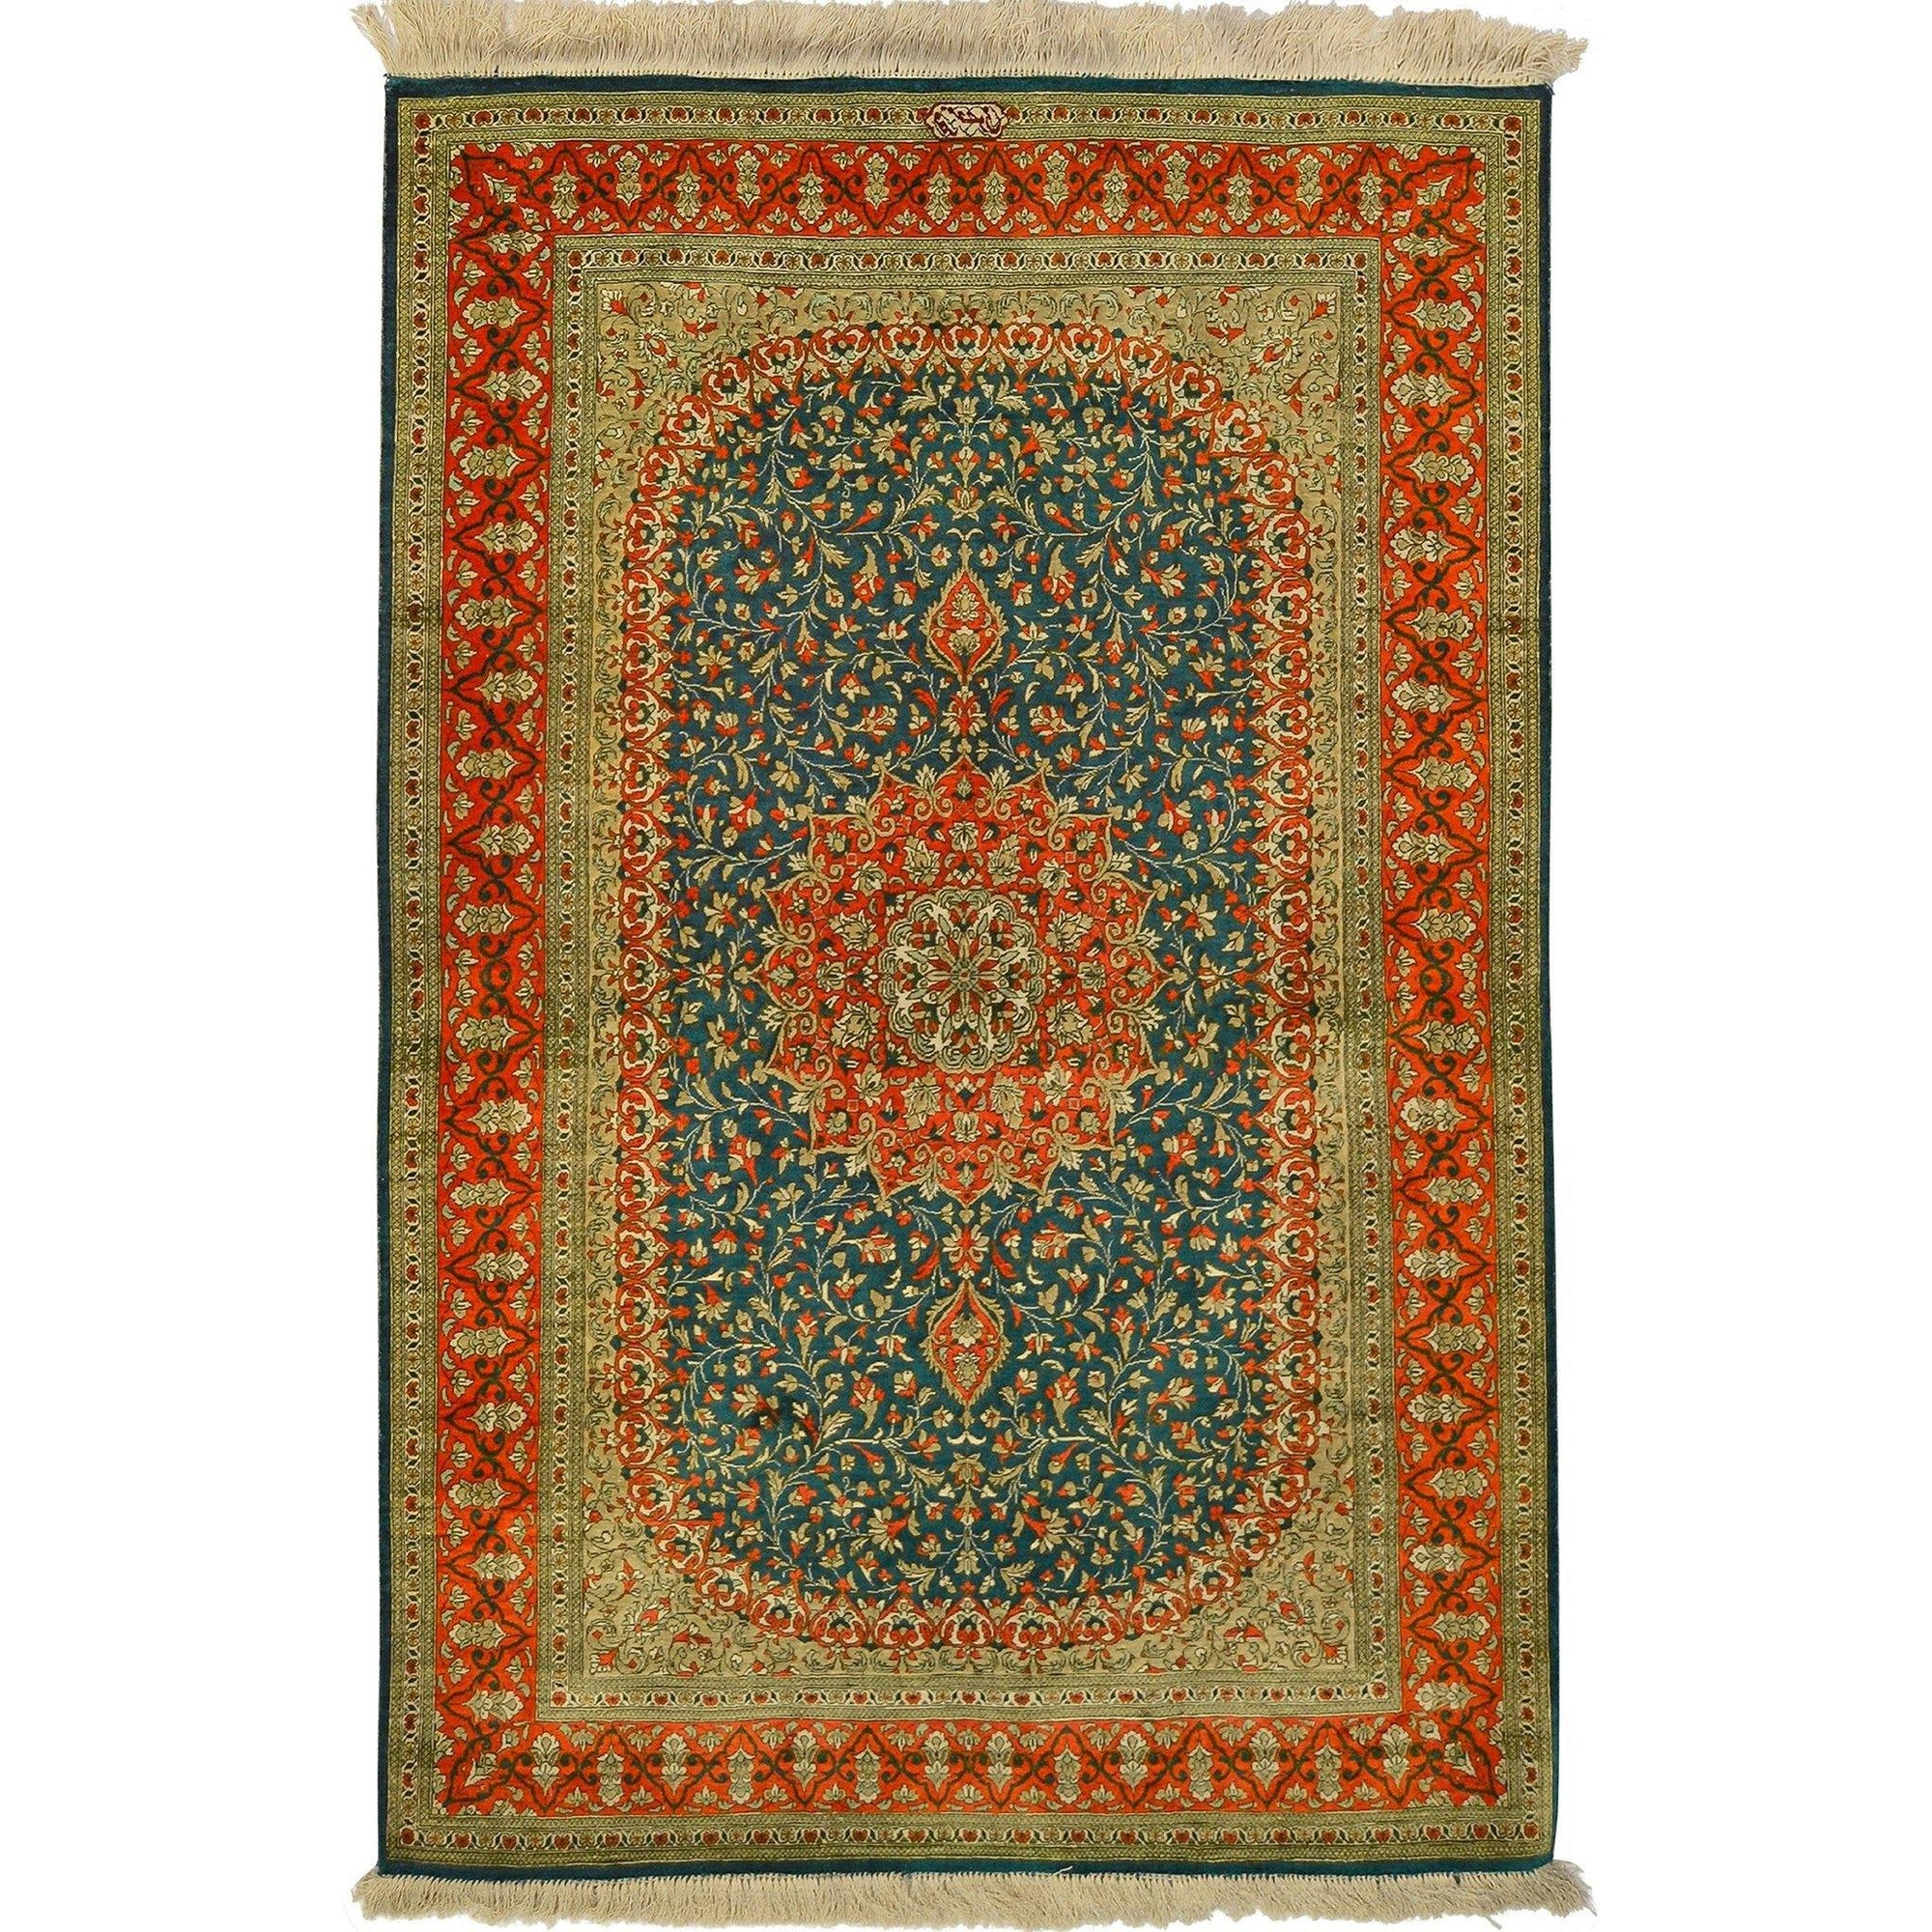 Fine Hand-knotted Persian Silk Qom/Qum Rug (SIGNED) Persian-Rug | House-of-Haghi | NewMarket | Auckland | NZ | Handmade Persian Rugs | Hand Knotted Persian Rugs